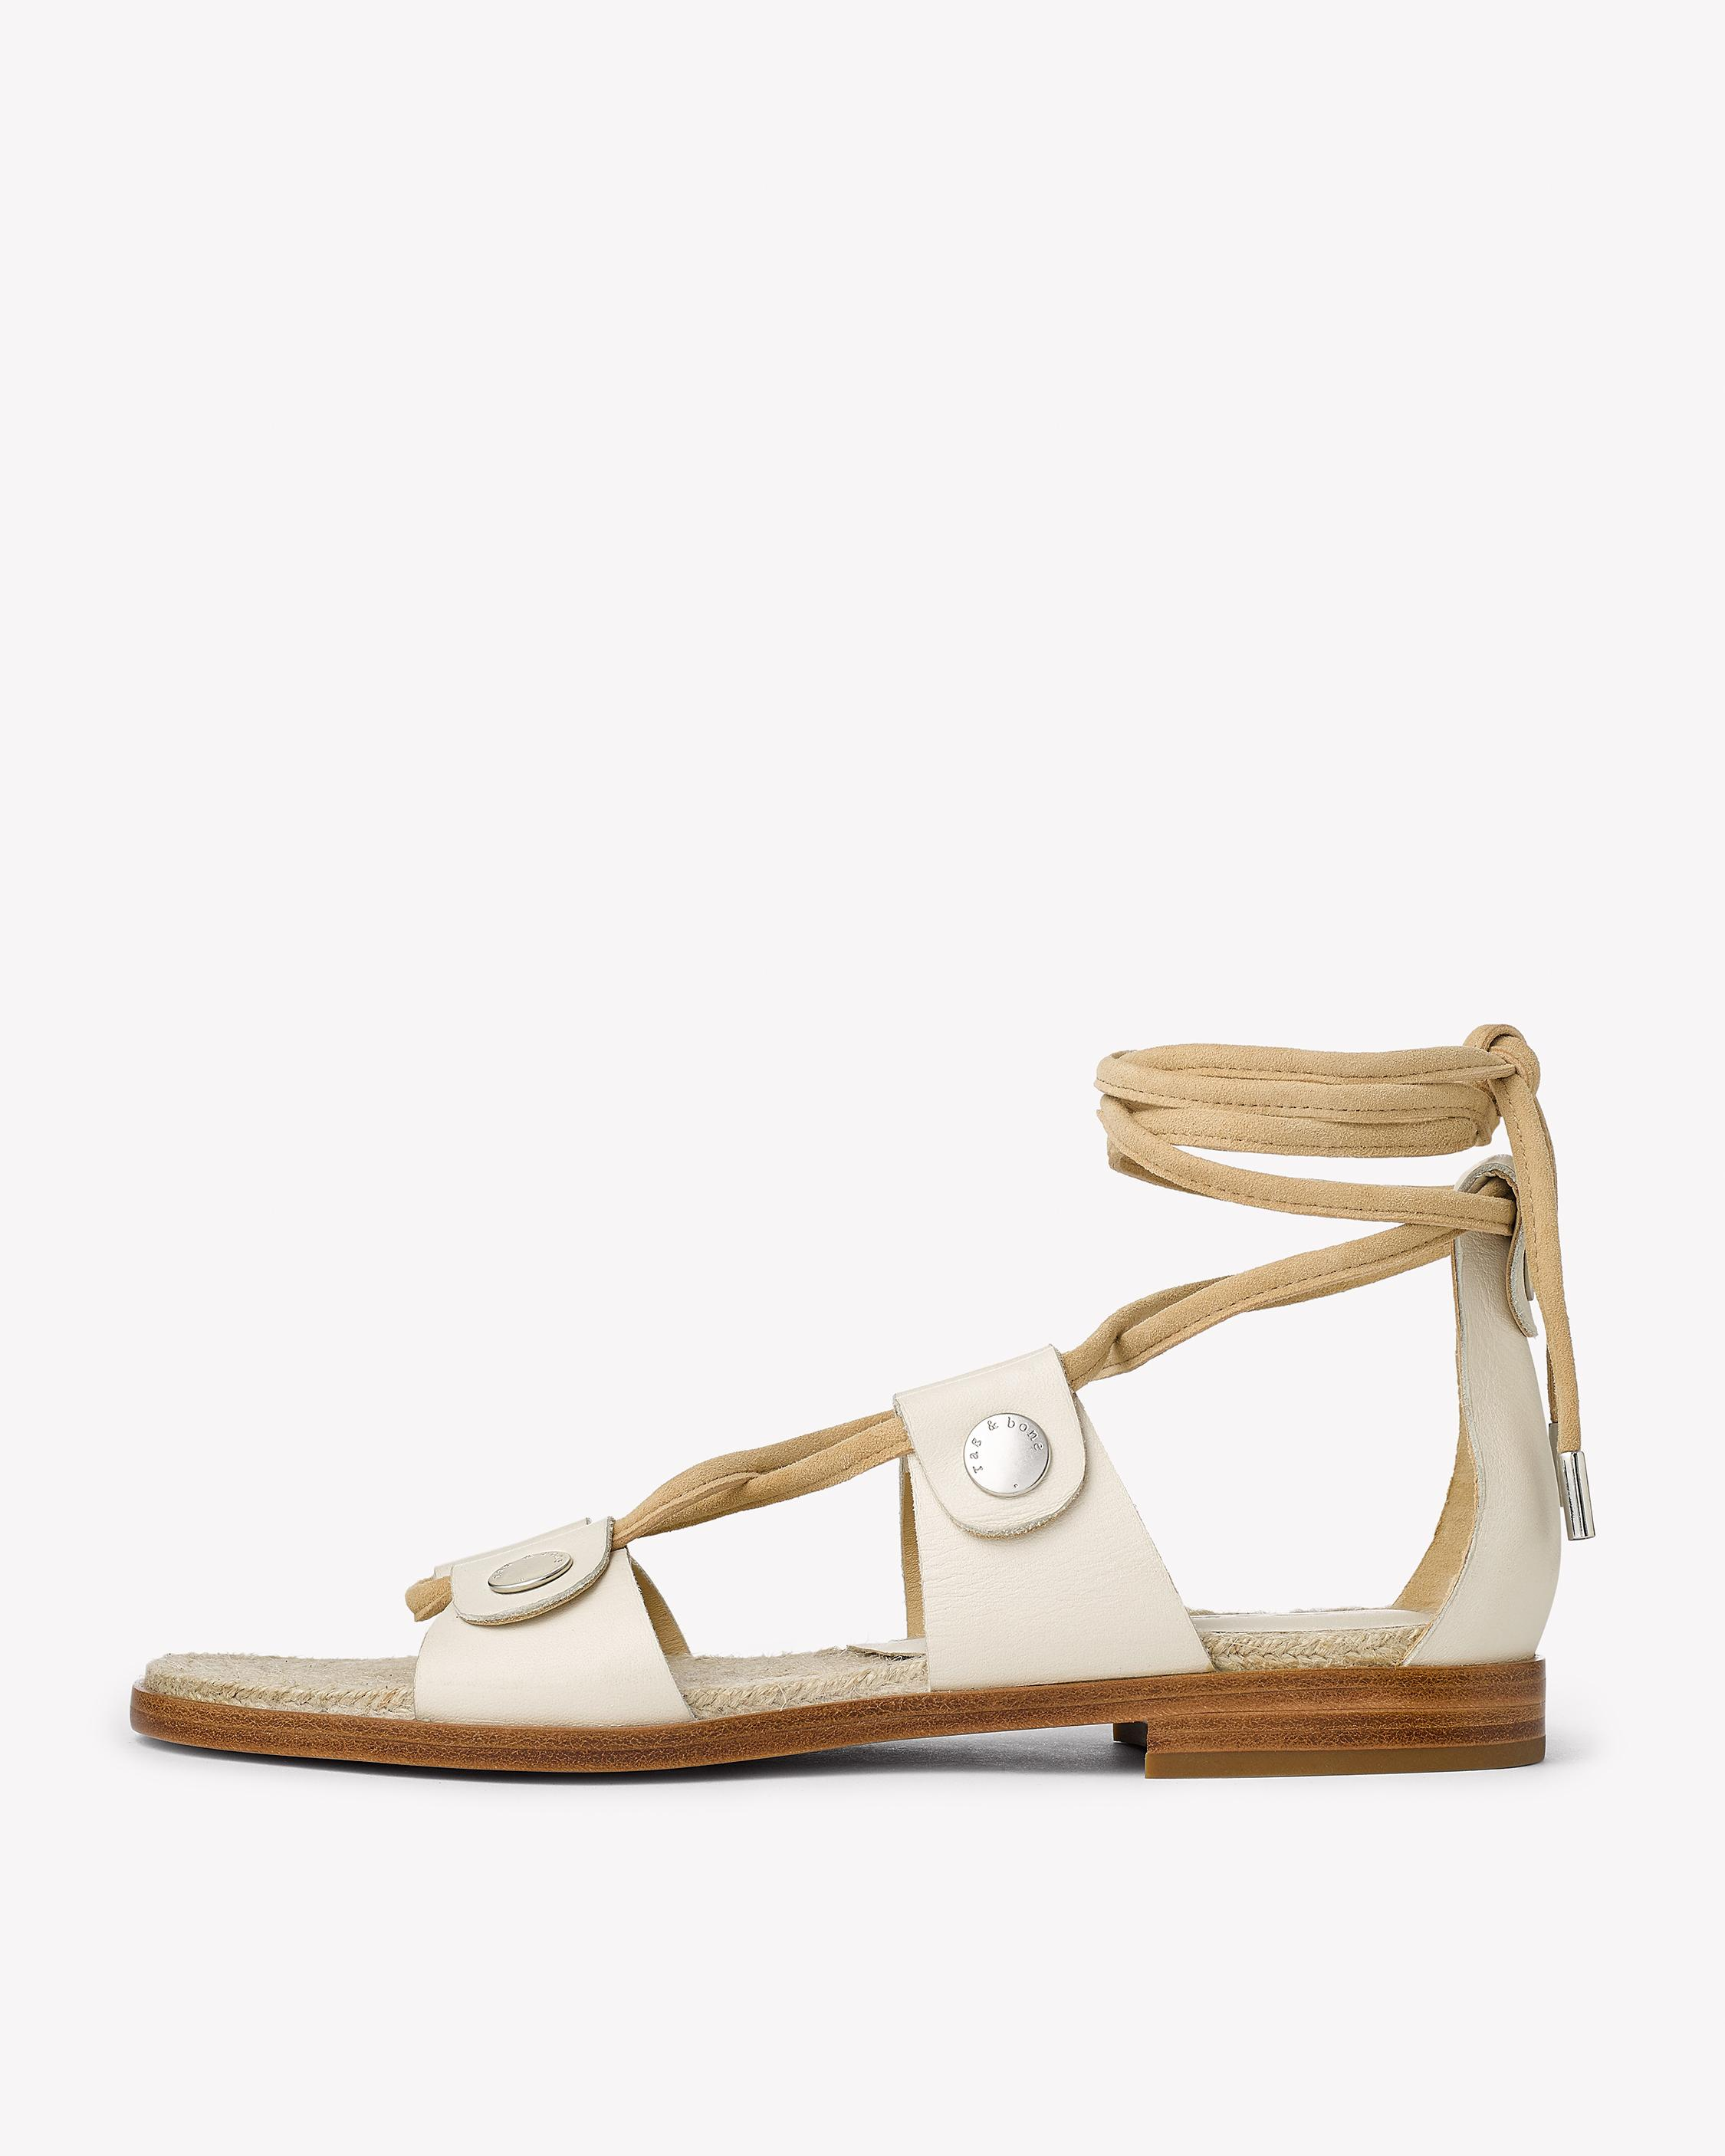 EVELYN lace-up SANDAL